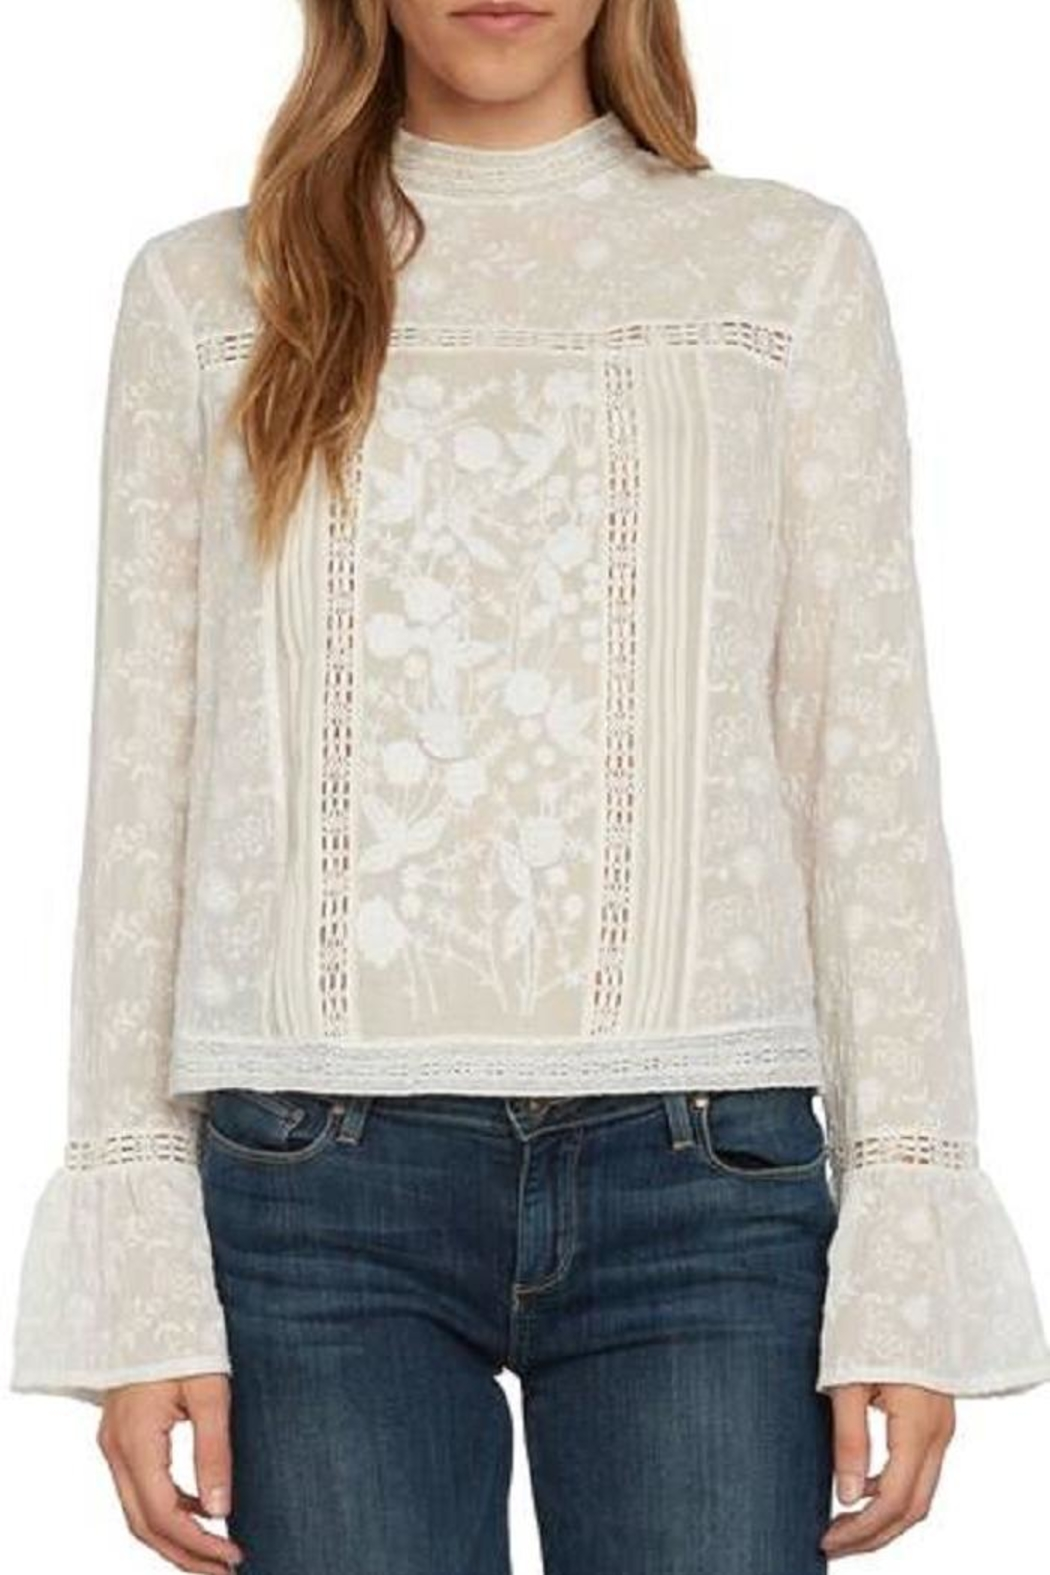 Willow & Clay Ivory Lace Top - Main Image